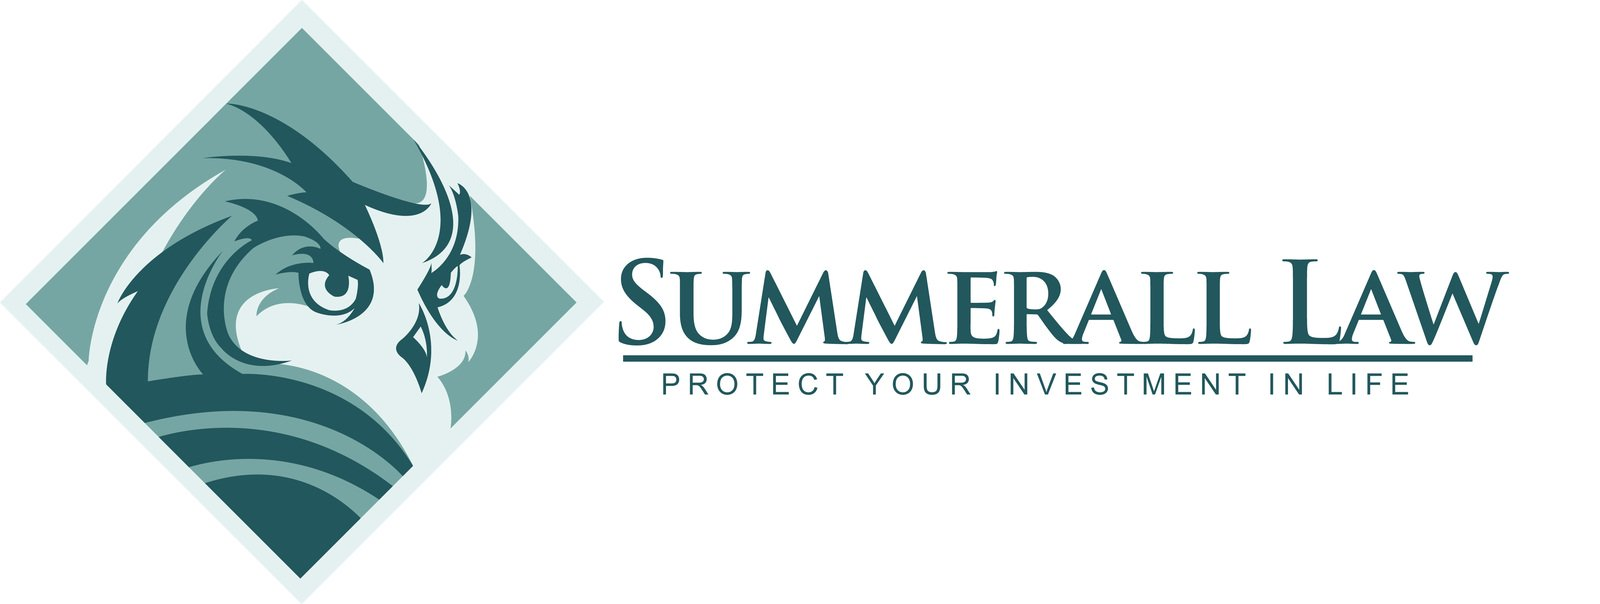 Just Health and Family AKA Summerall Law